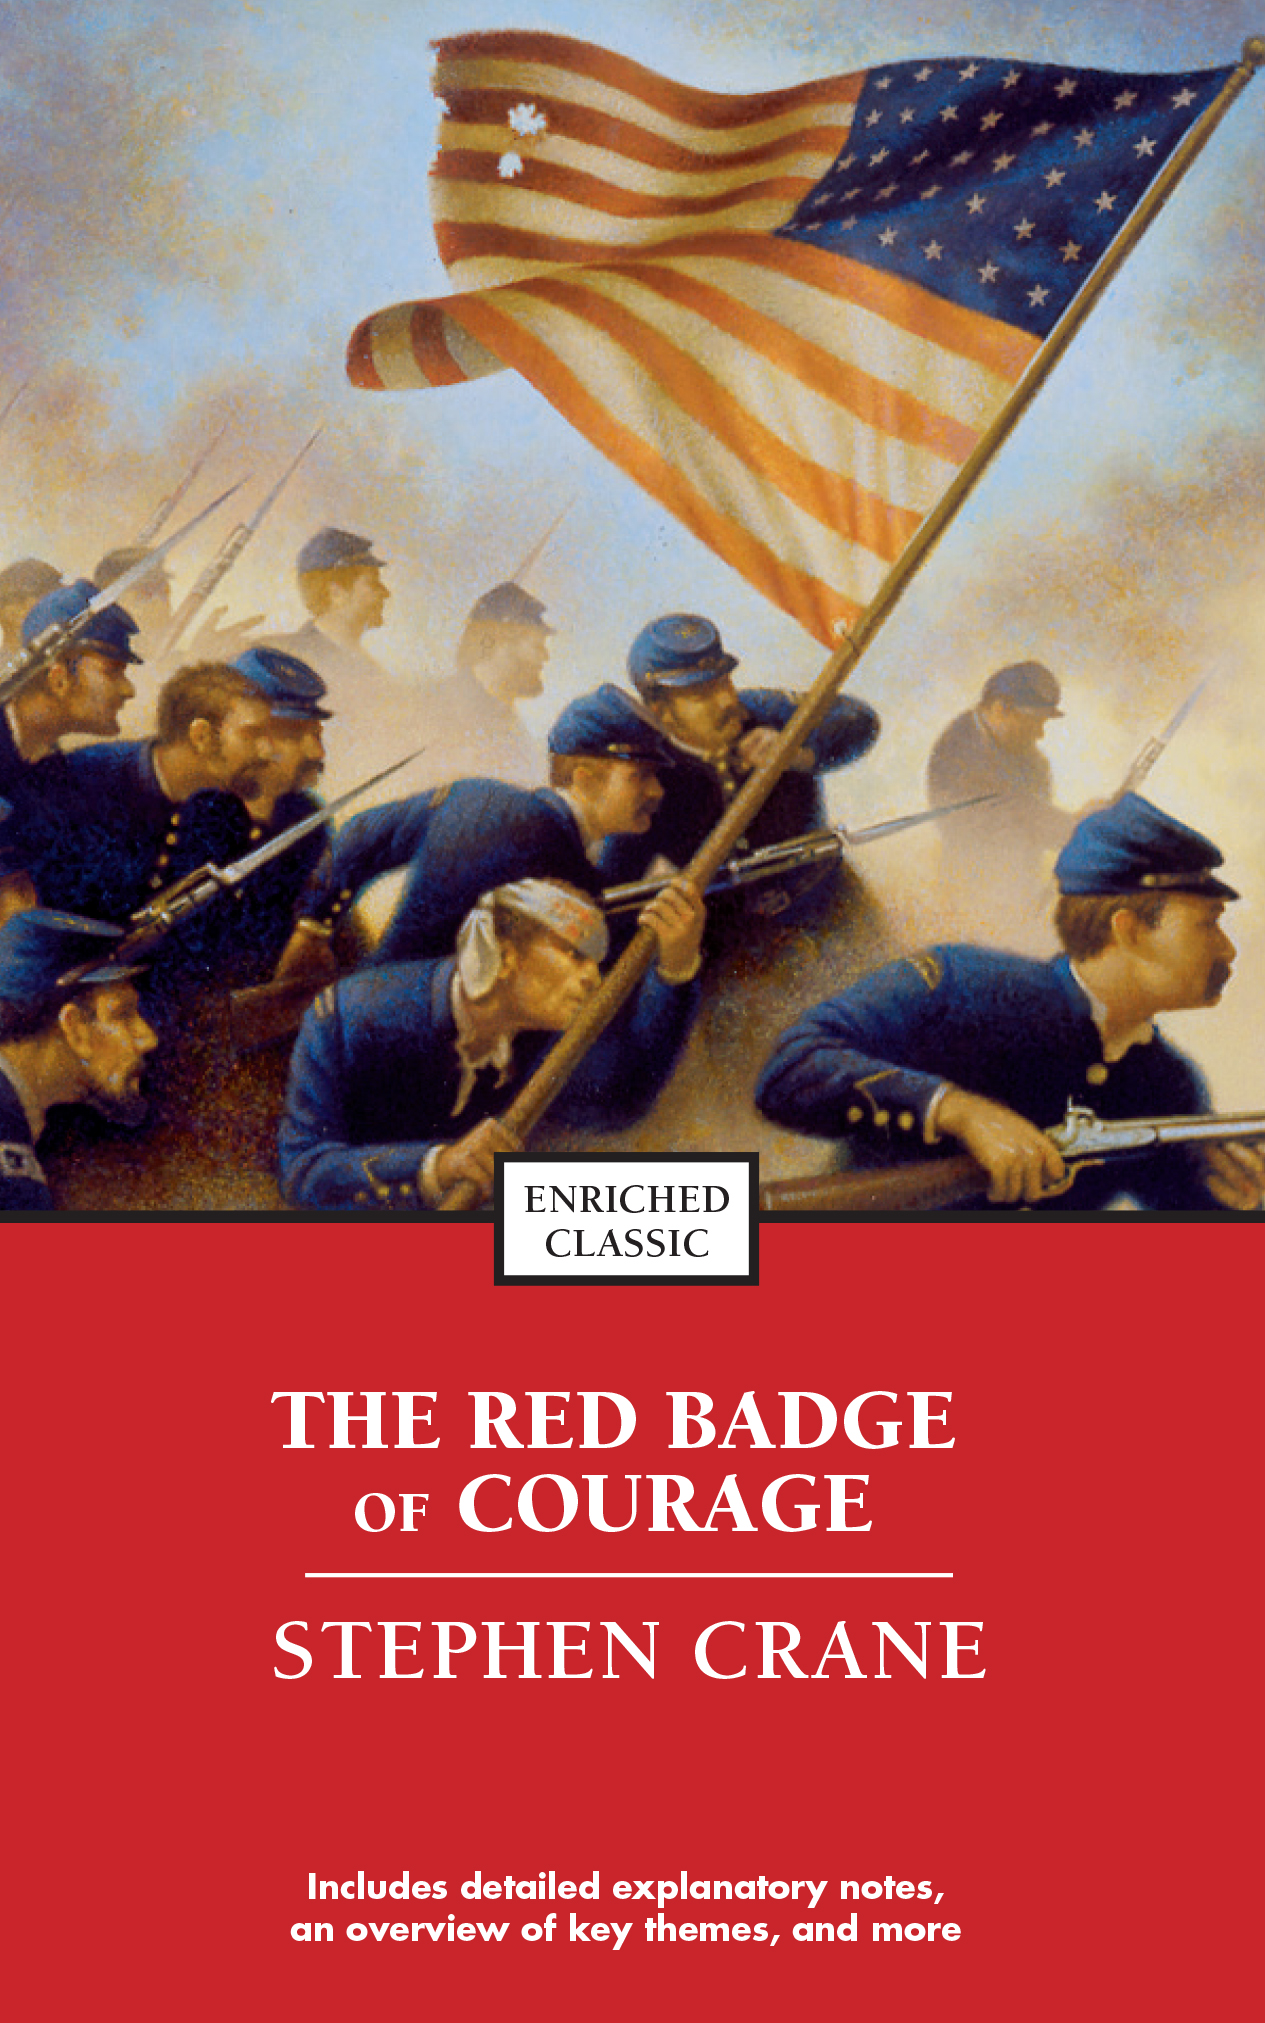 the red badge of courage book by stephen crane jim murphy the red badge of courage